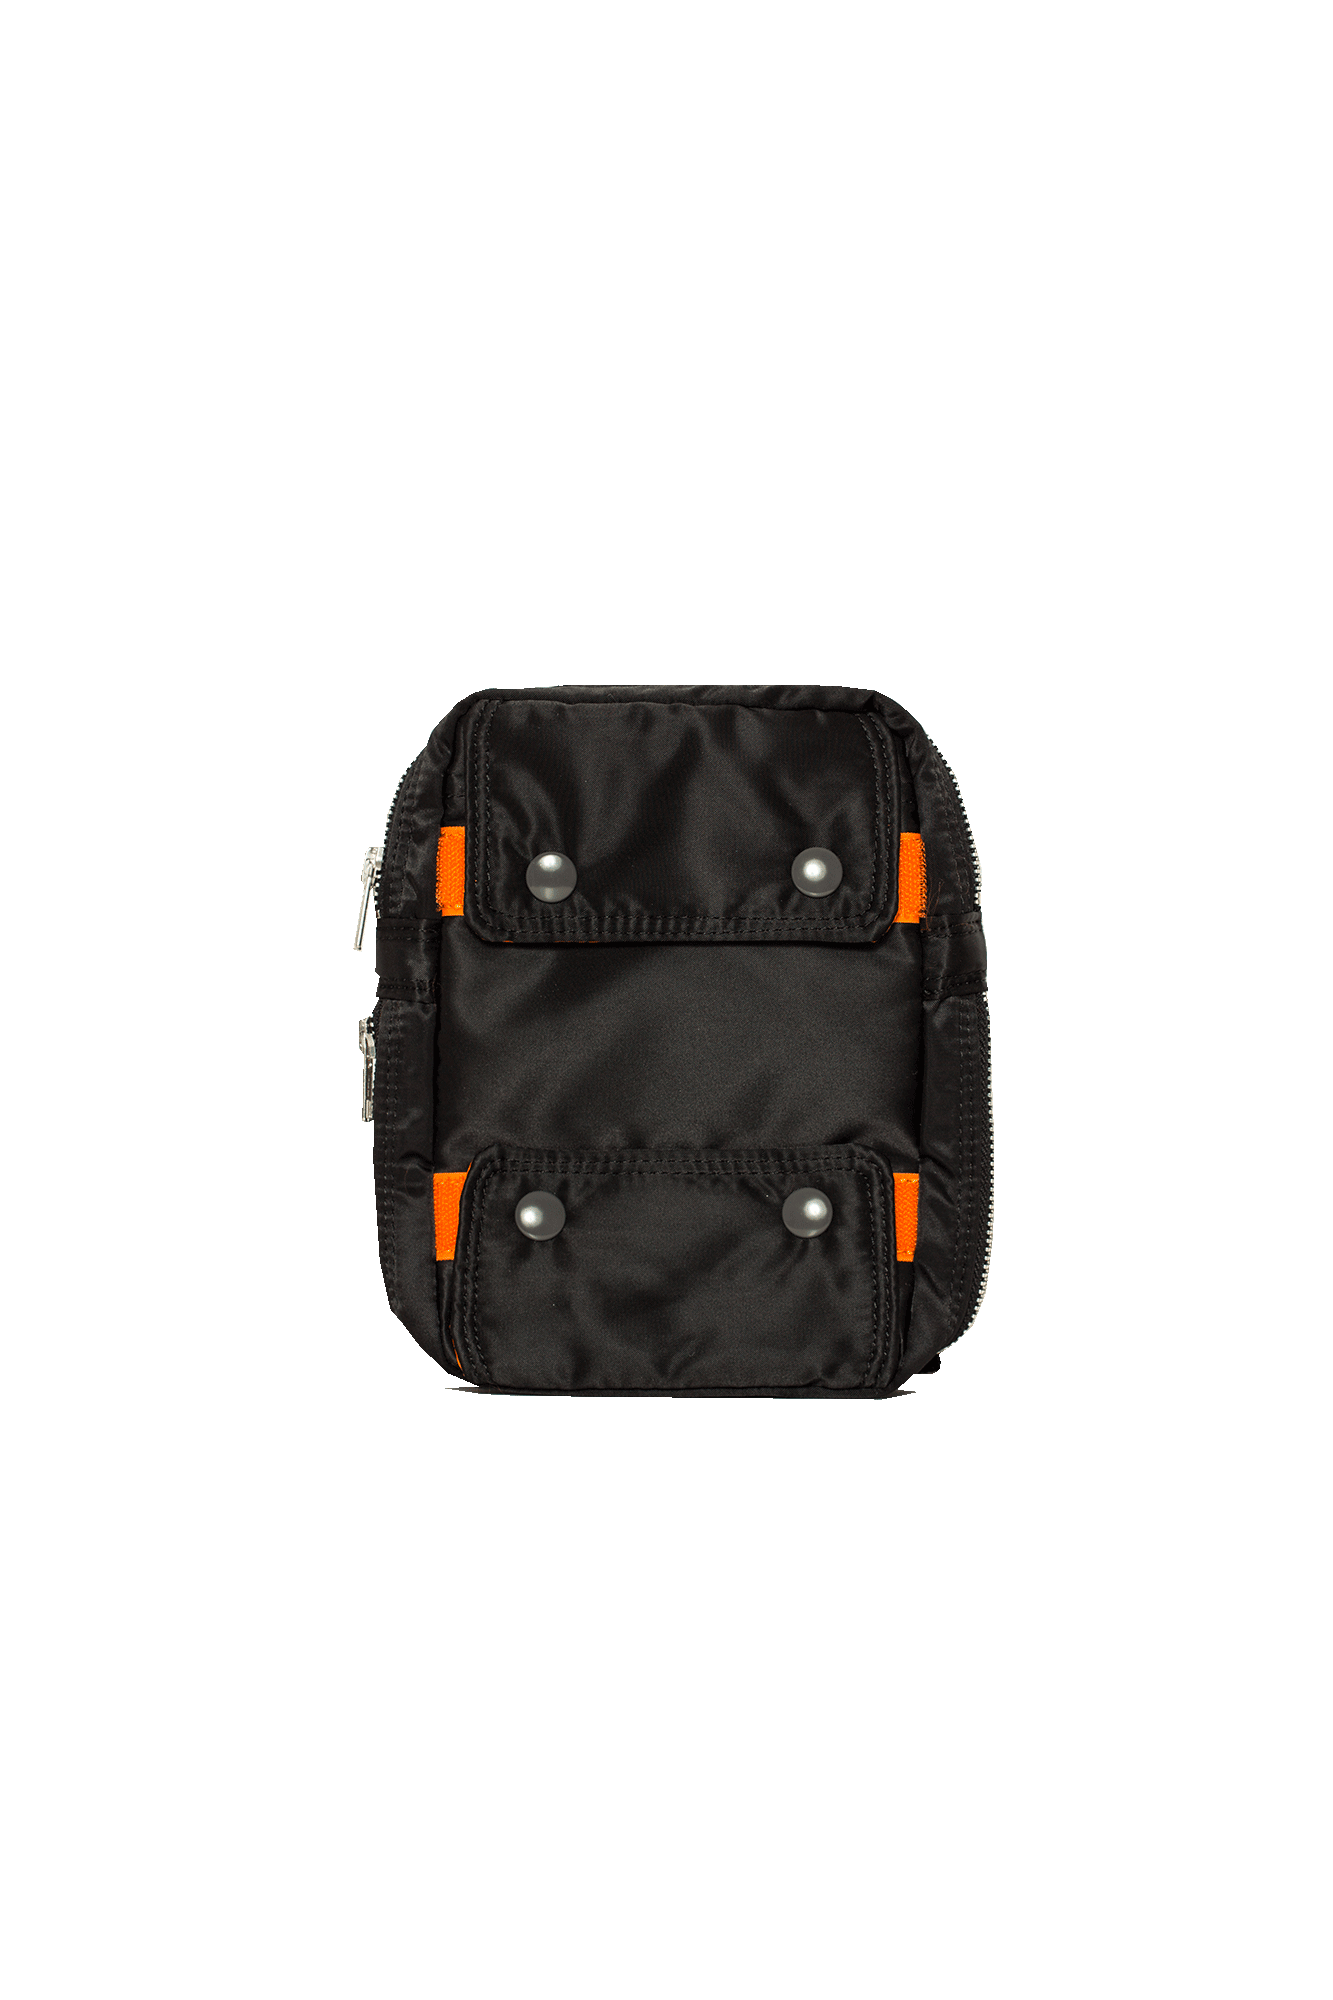 Porter-Yoshida & Co Backpacks Tanker Rucksack Black 62209162#000#BLK#OS - One Block Down